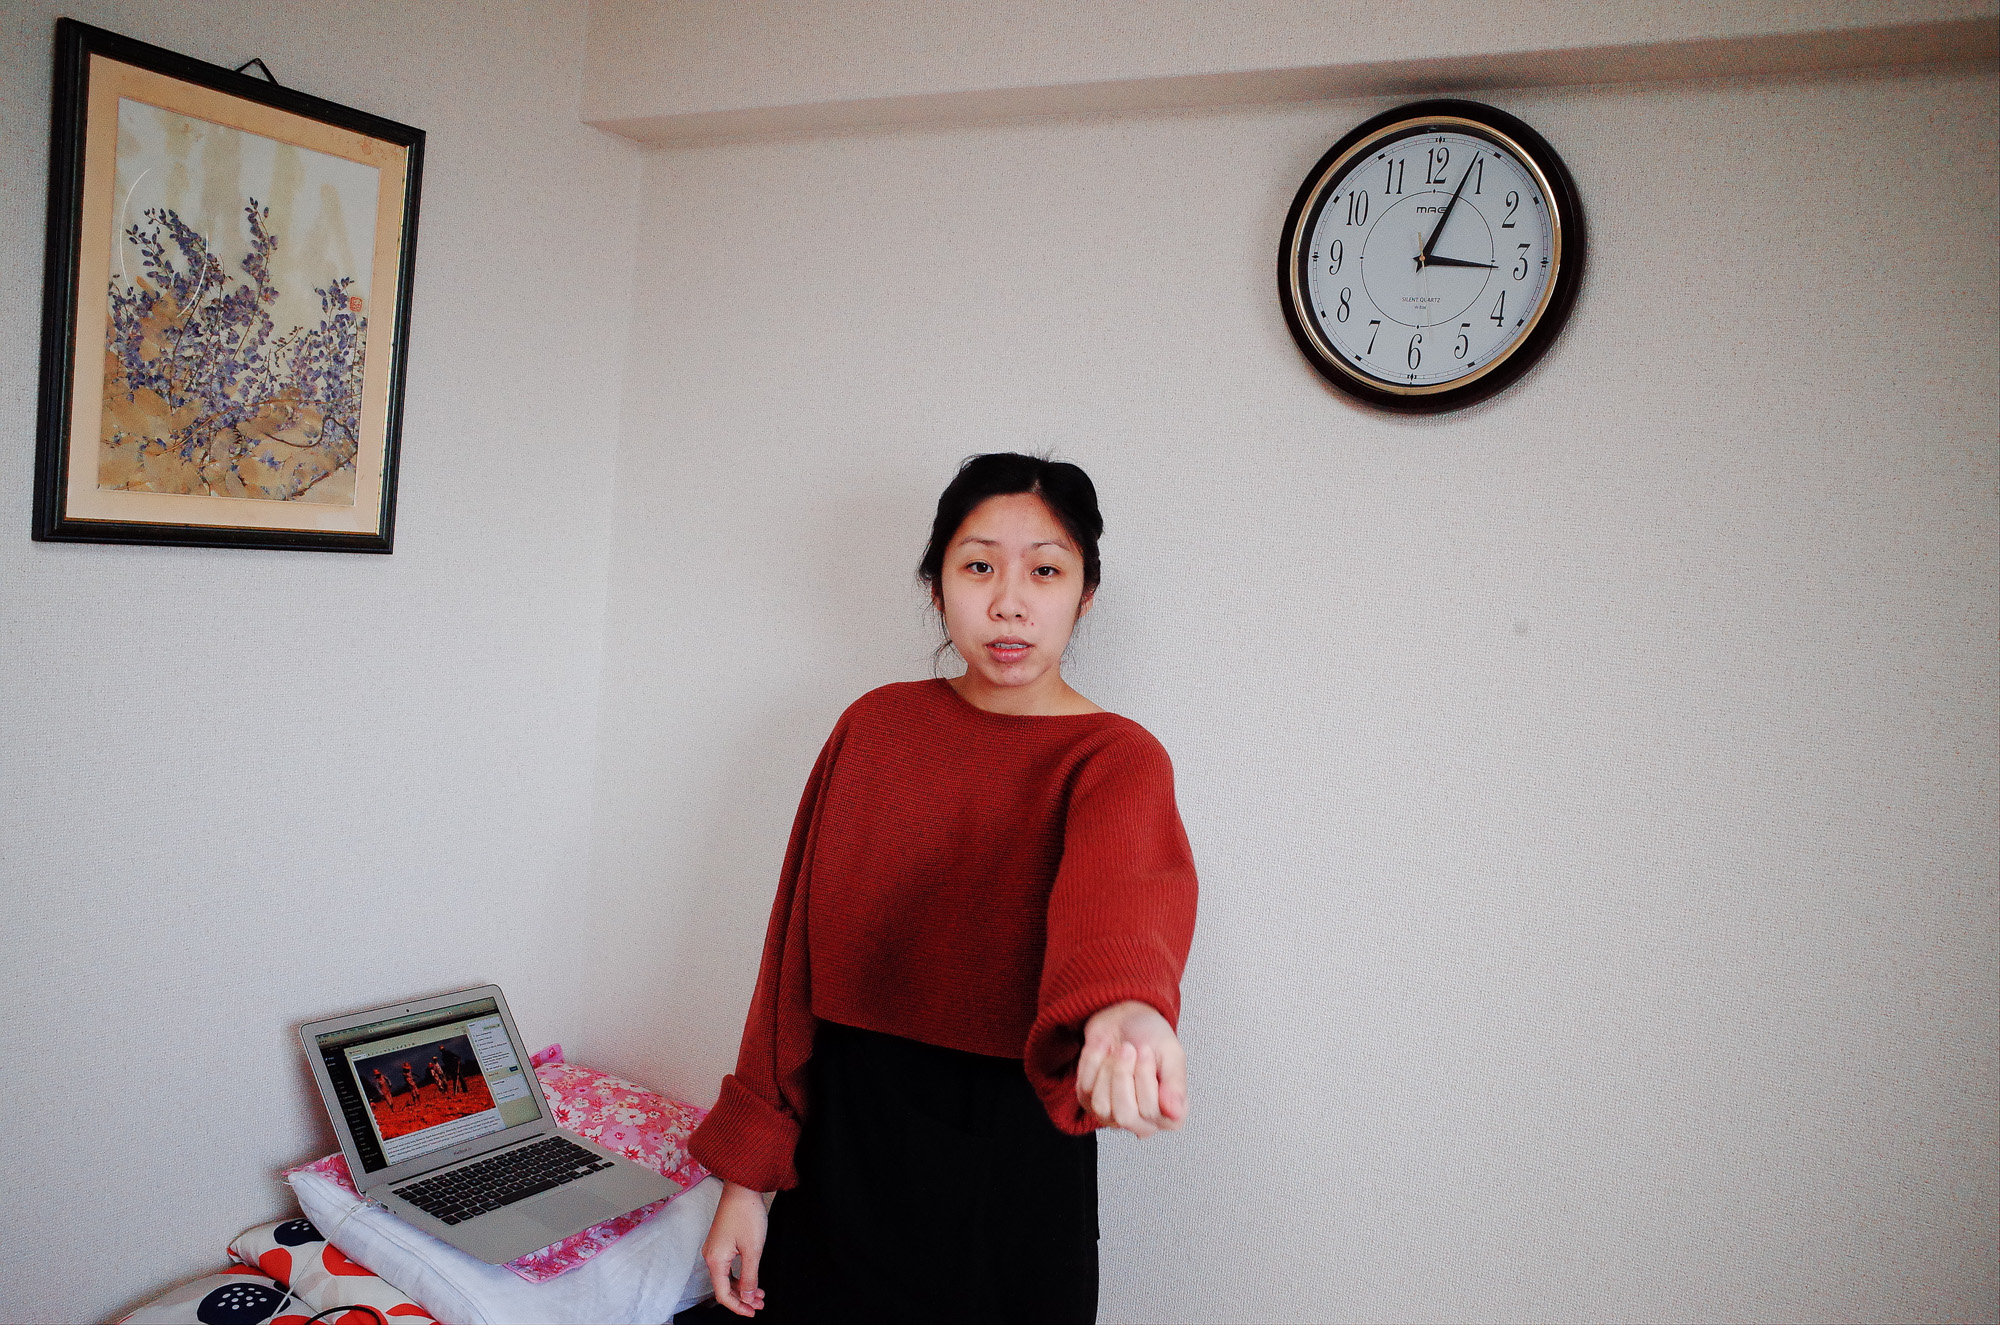 Cindy in living room, with clock in background. Osaka, 2018